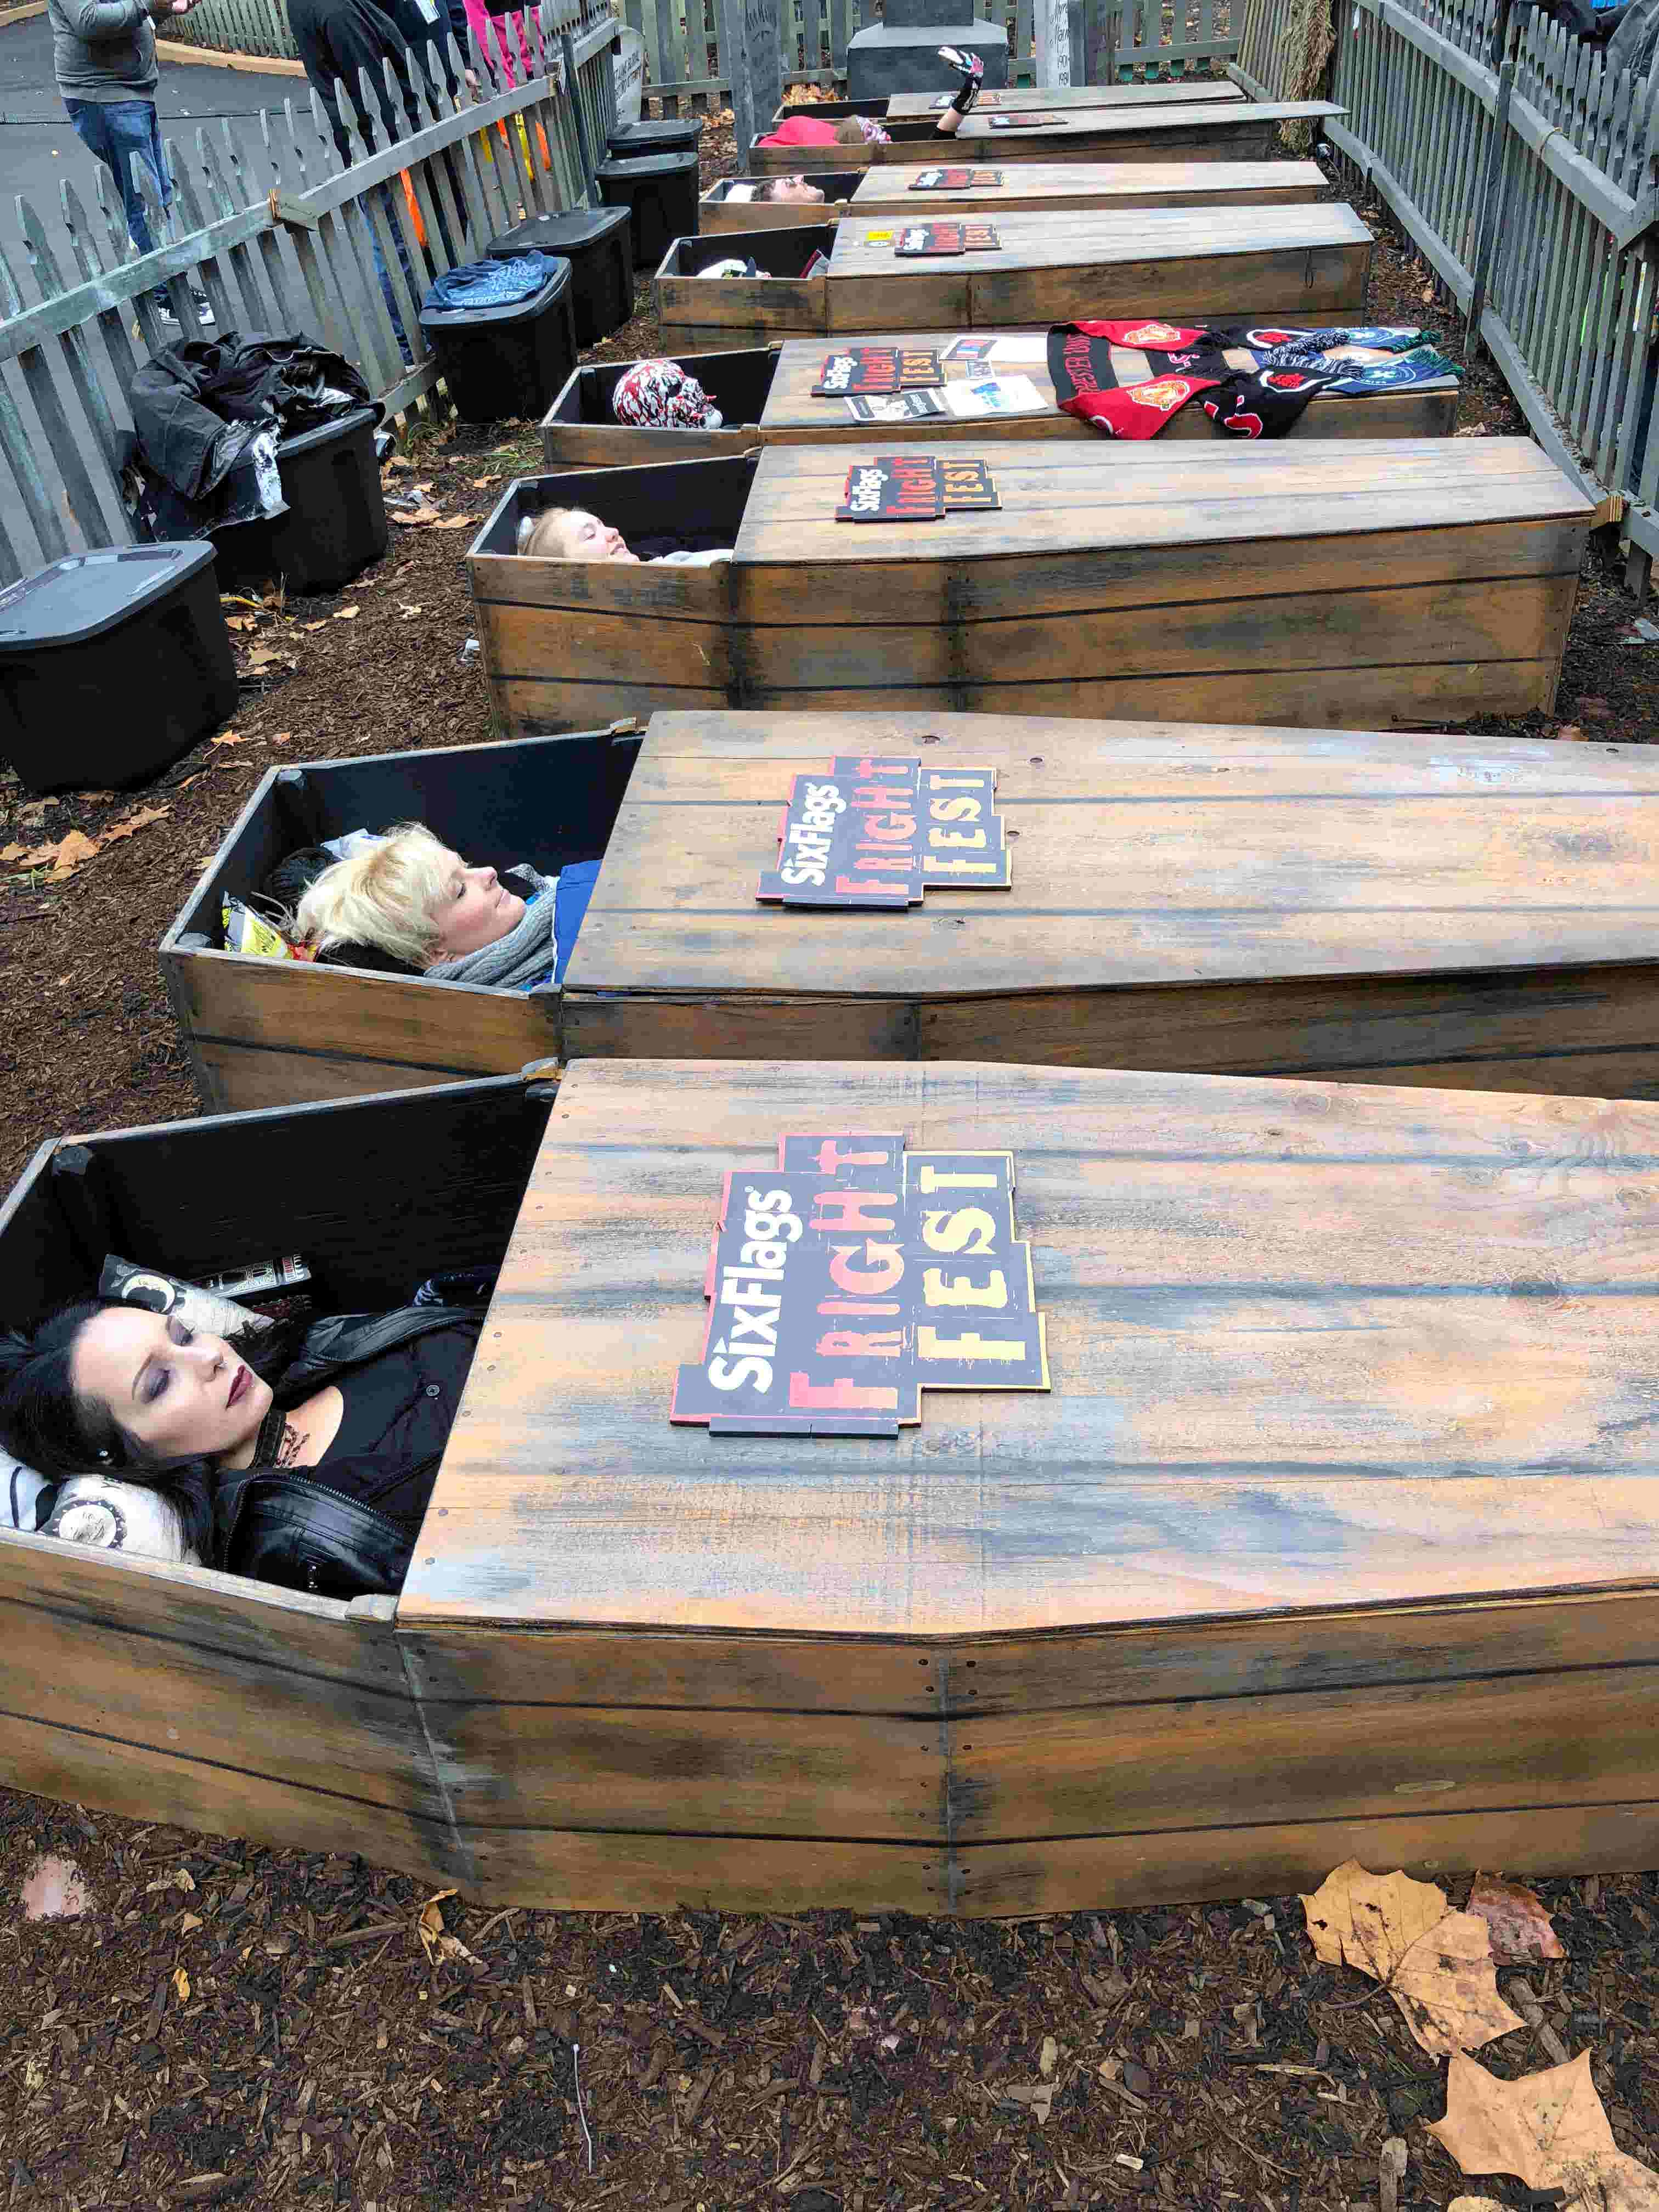 Meet The Swoman Spending 30 Hours In A Casket For Six Flags Coffin Challenge